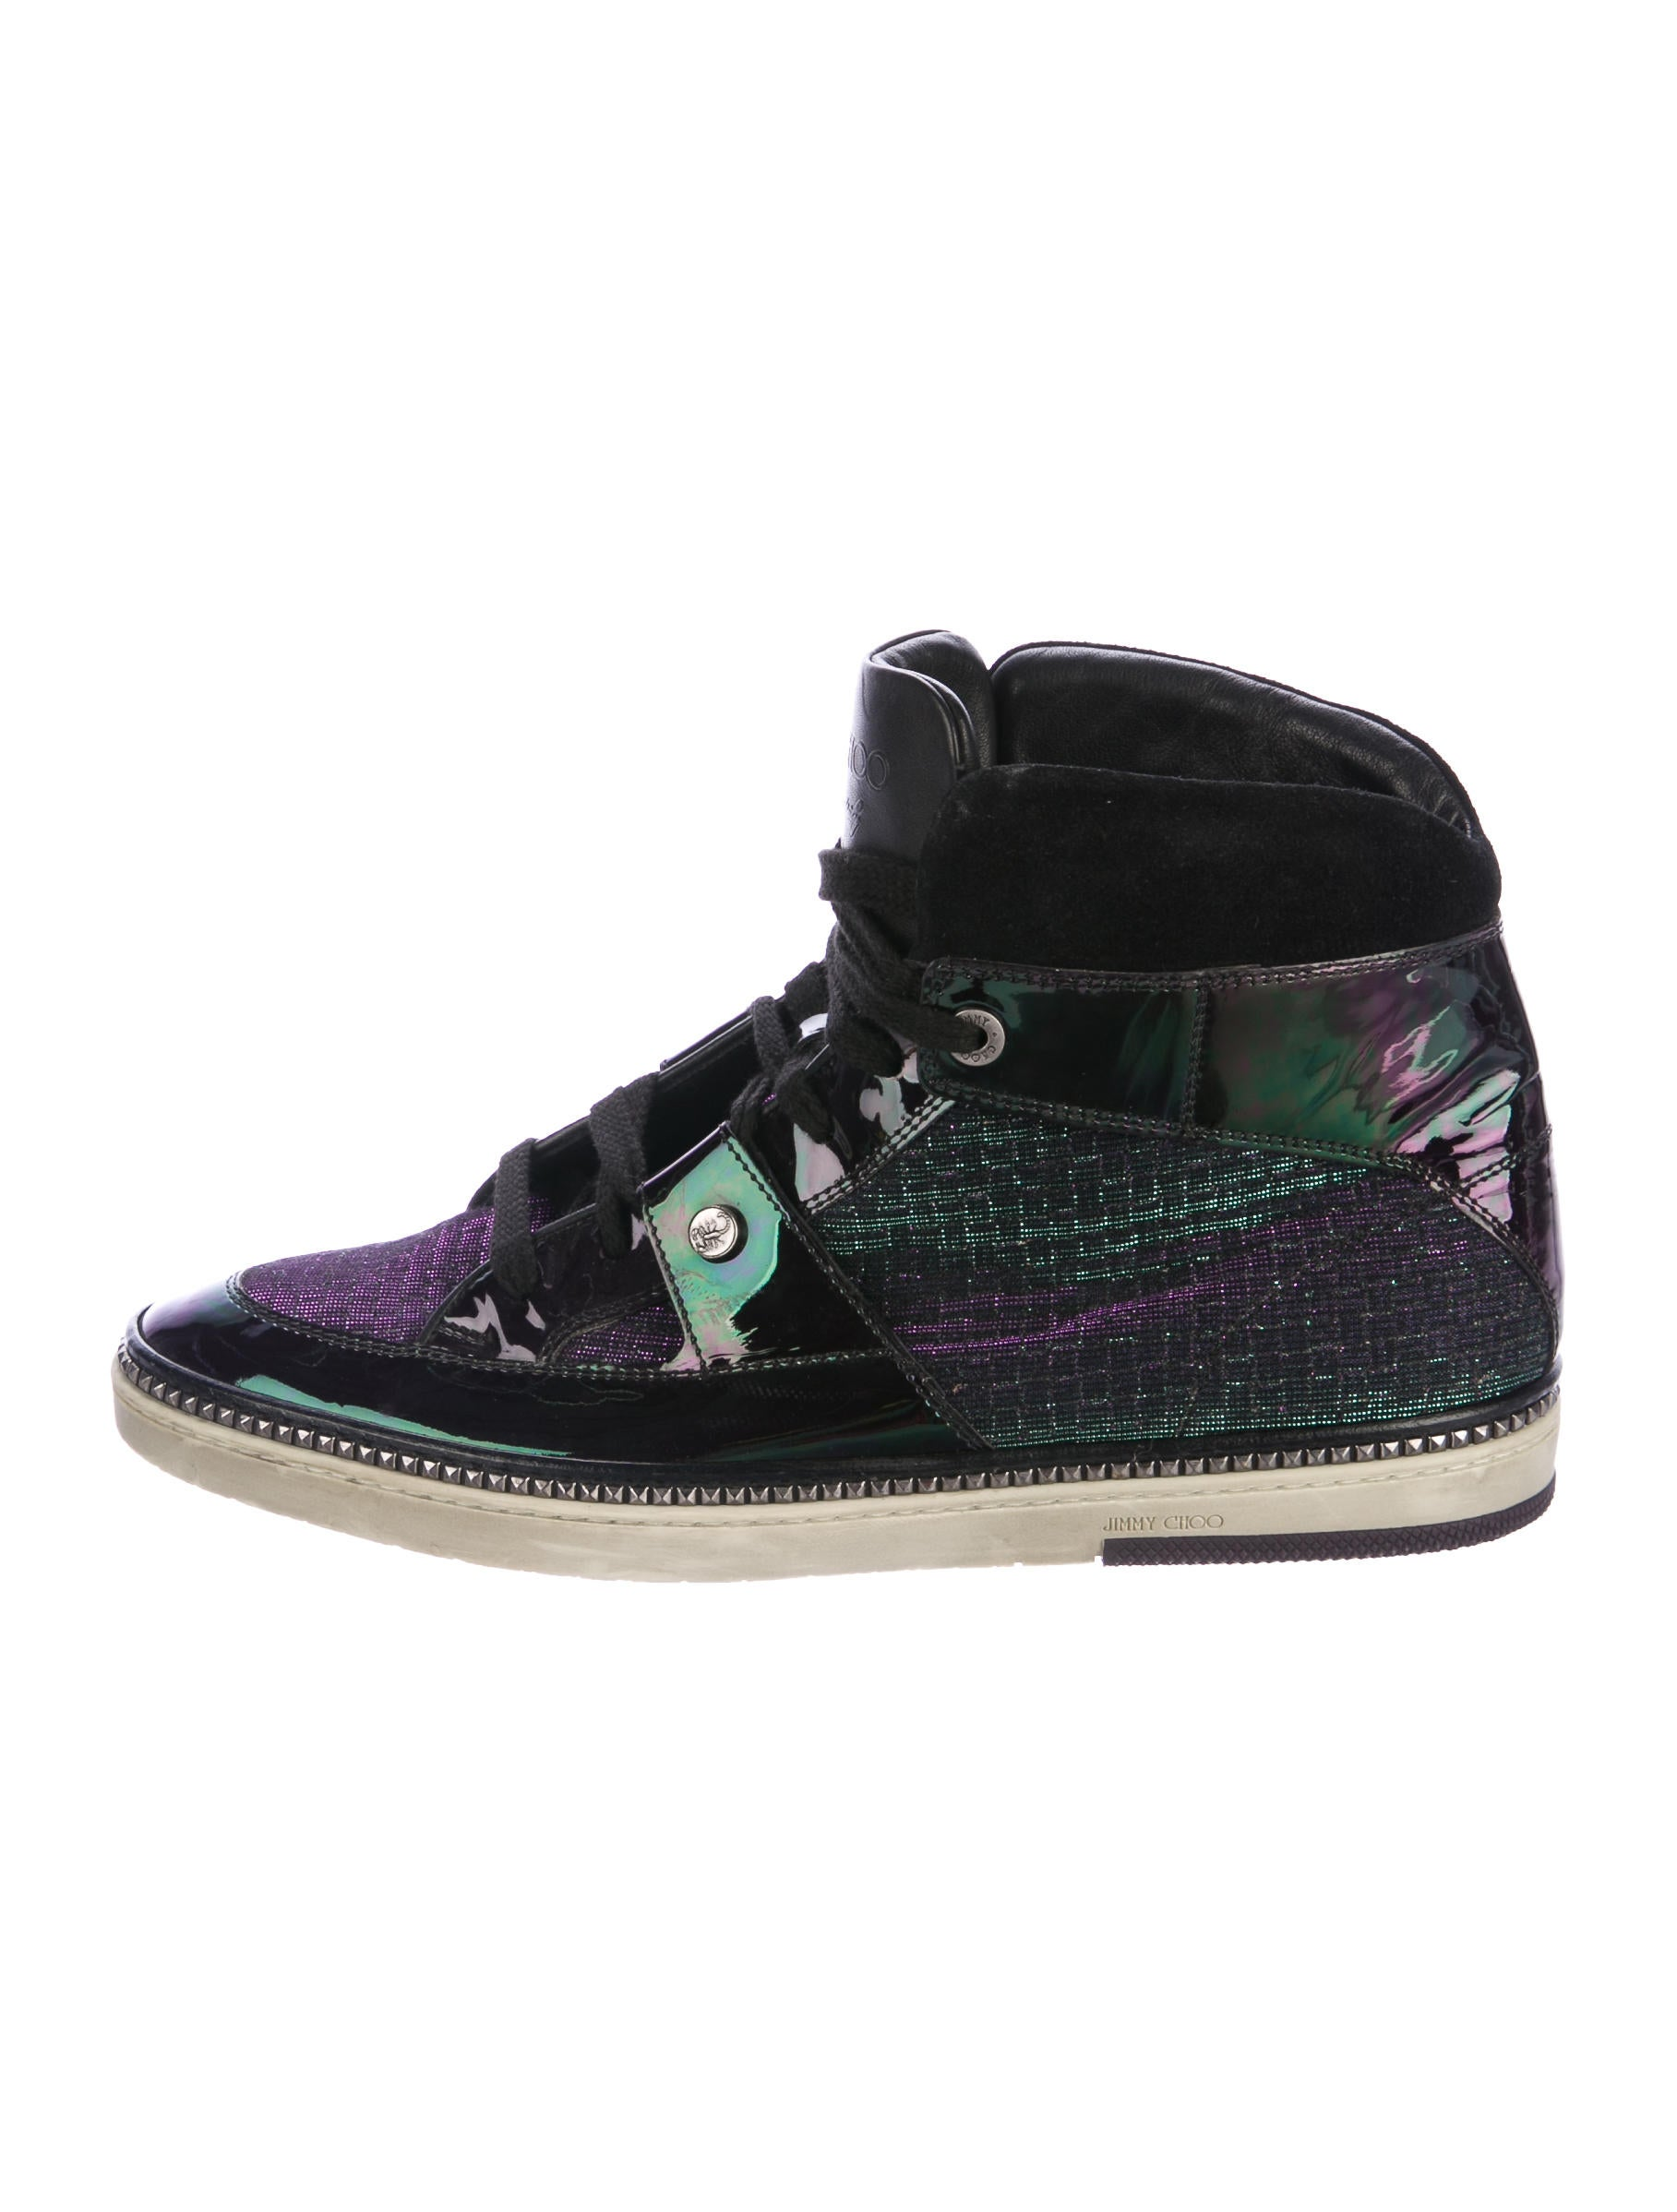 jimmy choo iridescent patent leather sneakers shoes jim73043 the realreal. Black Bedroom Furniture Sets. Home Design Ideas